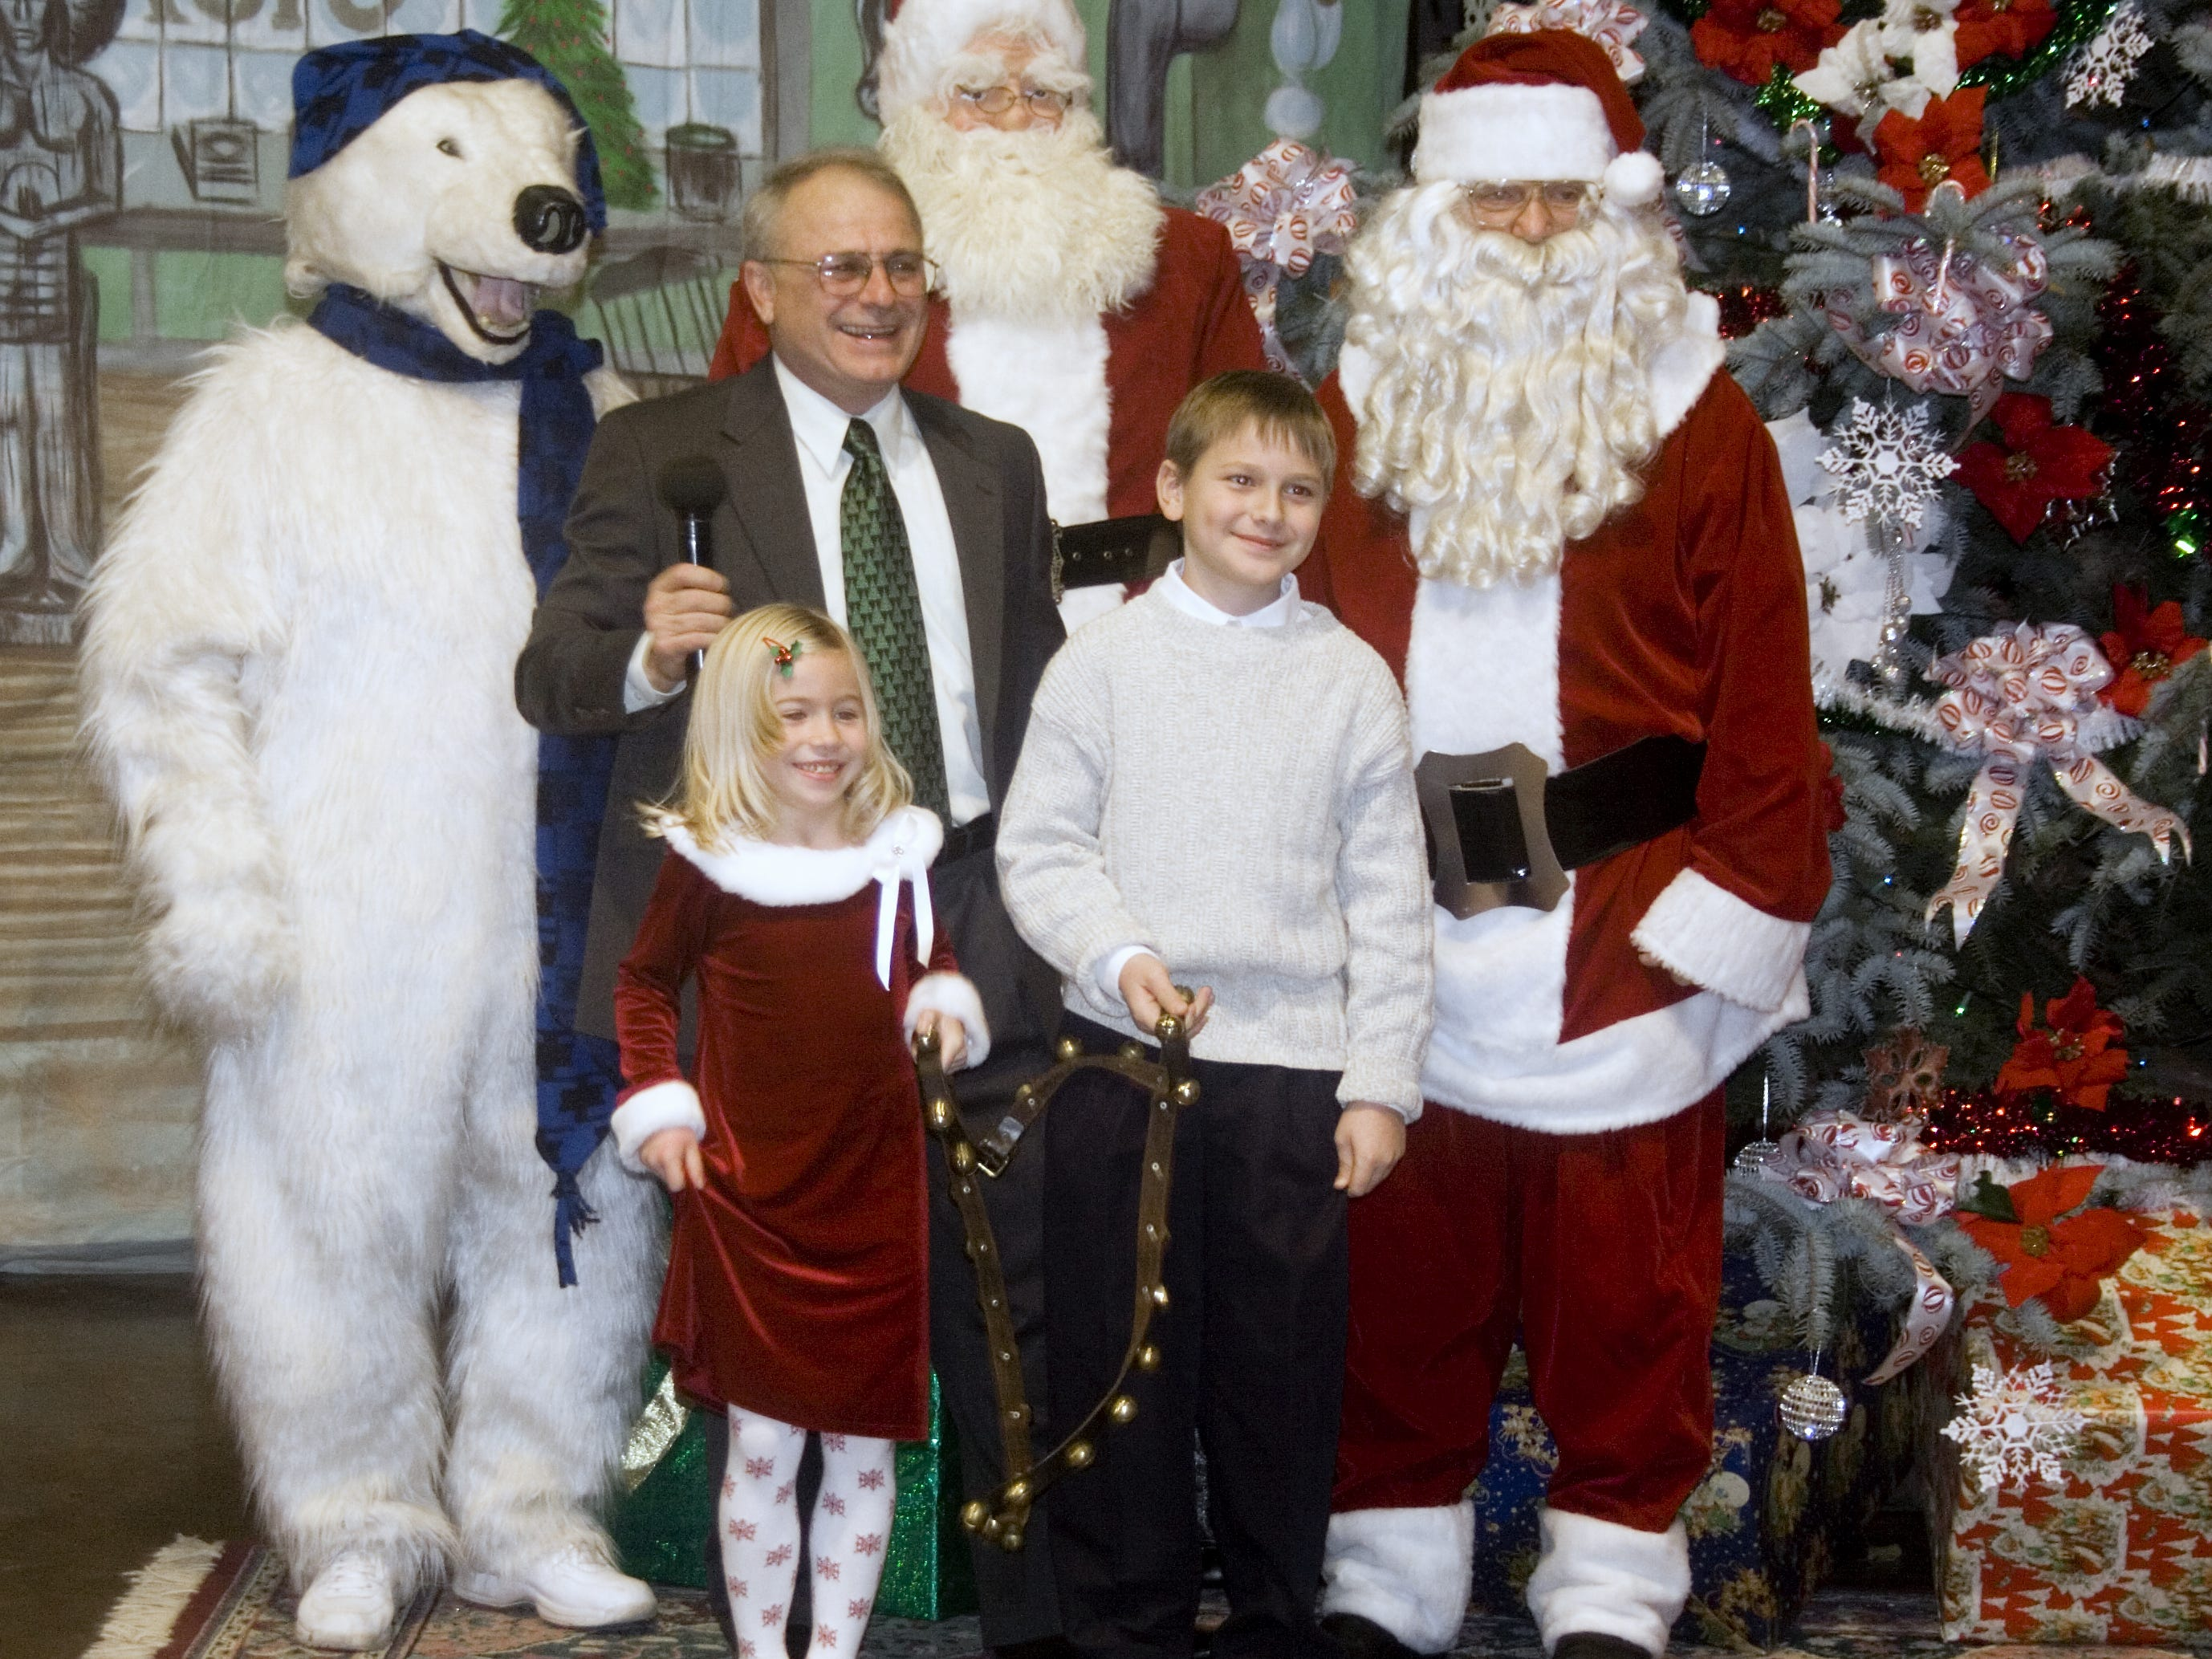 Santa Claus and the Arctic League mascot join master of ceremonies Tom Bruner and bell ringers Alecia McKillip and Lucas Peris during the 2007 annual broadcast.